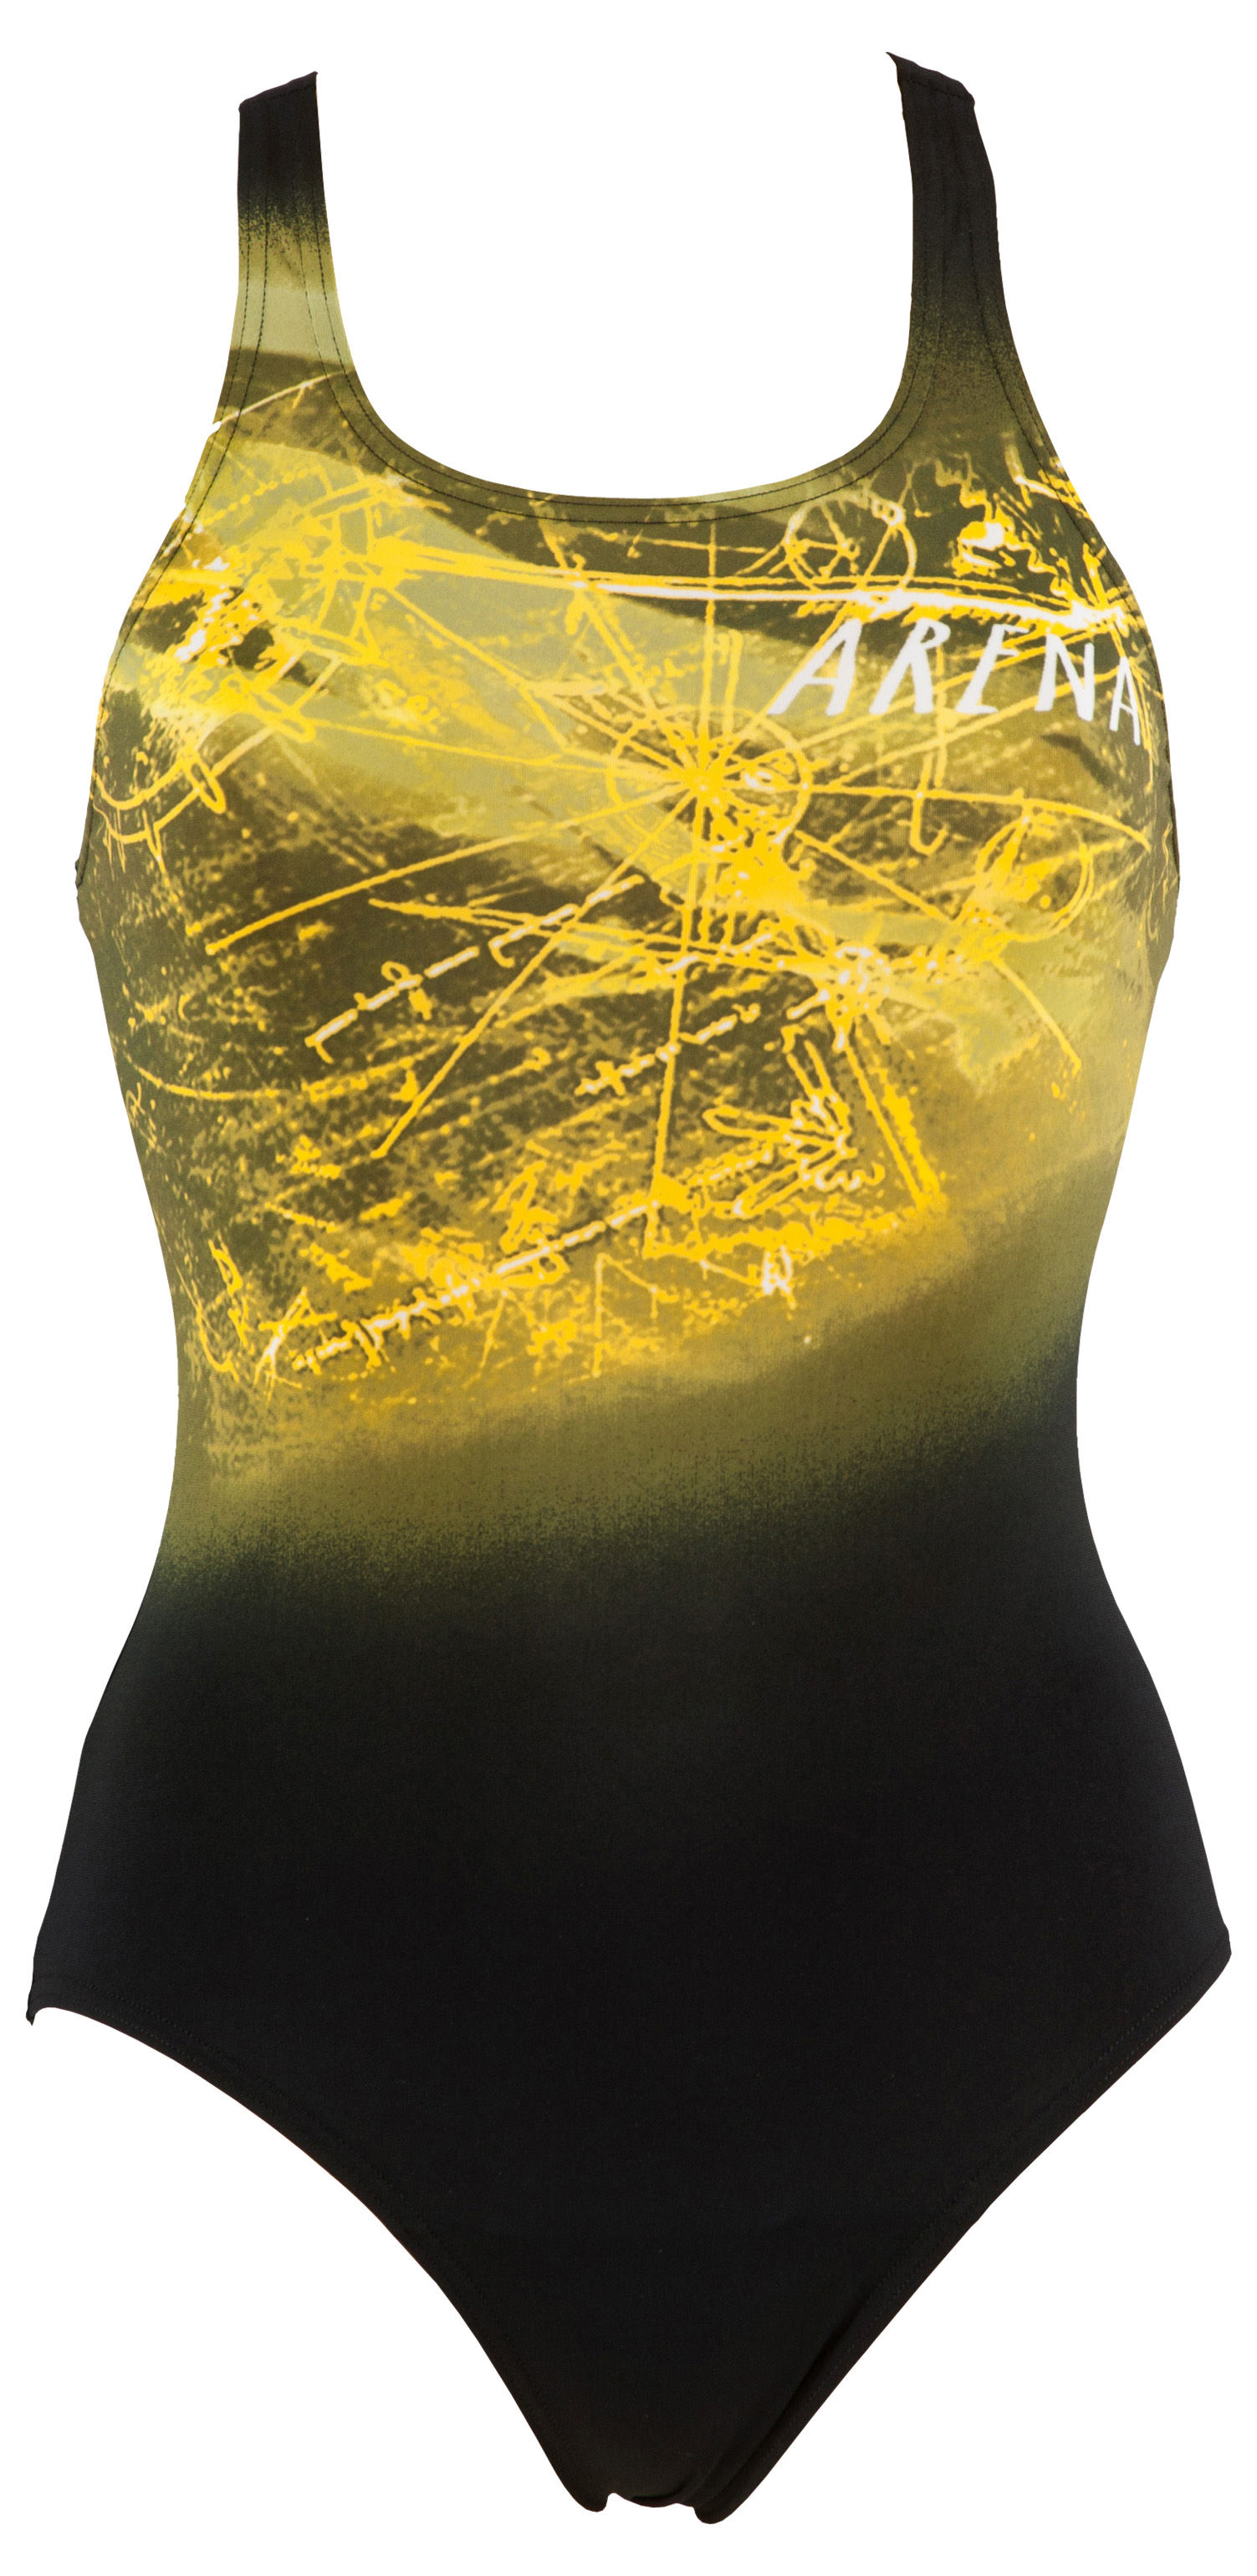 42 arena Womens Drafty One Piece Pro Back Swimming Swimsuit Costume Yellow